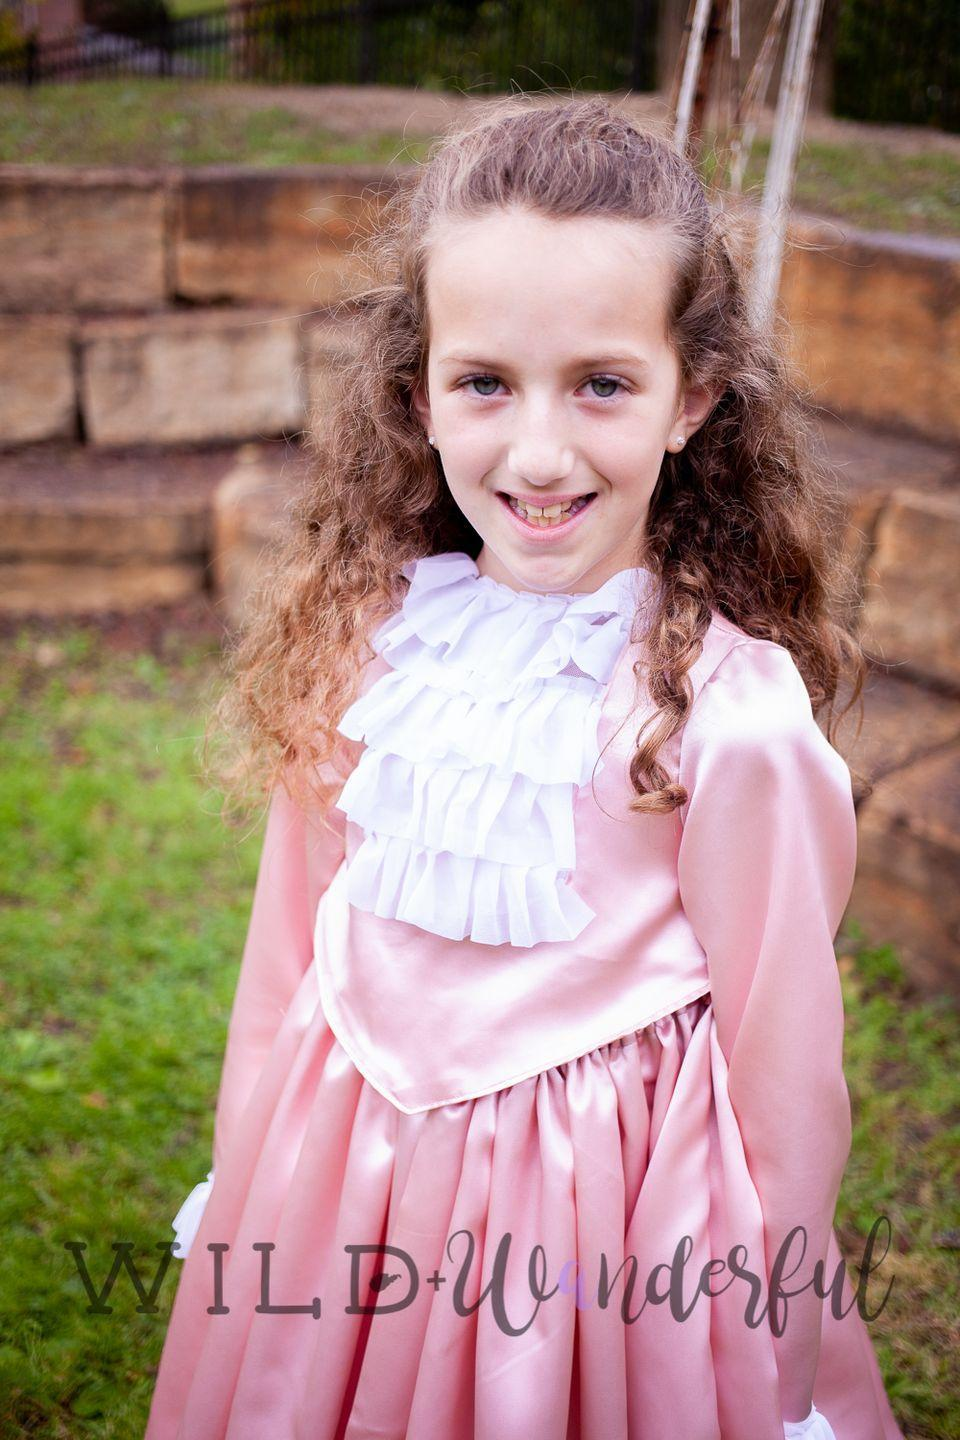 """<p>When West Virginian sewing enthusiast Katy McKinley was asked to design an Angelica Schuyler ballgown replica for a local student, she almost panicked; she only had a basic knowledge of <em>Hamilton</em>. But with a little research — and Angelica's signature determination — she put together this darling dress.</p><p><em><a href=""""https://wildandwanderful.com/blog/2018/10/angelica-schuyler/"""" rel=""""nofollow noopener"""" target=""""_blank"""" data-ylk=""""slk:Get the tutorial at Wild + Wanderful »"""" class=""""link rapid-noclick-resp"""">Get the tutorial at Wild + Wanderful »</a></em></p>"""